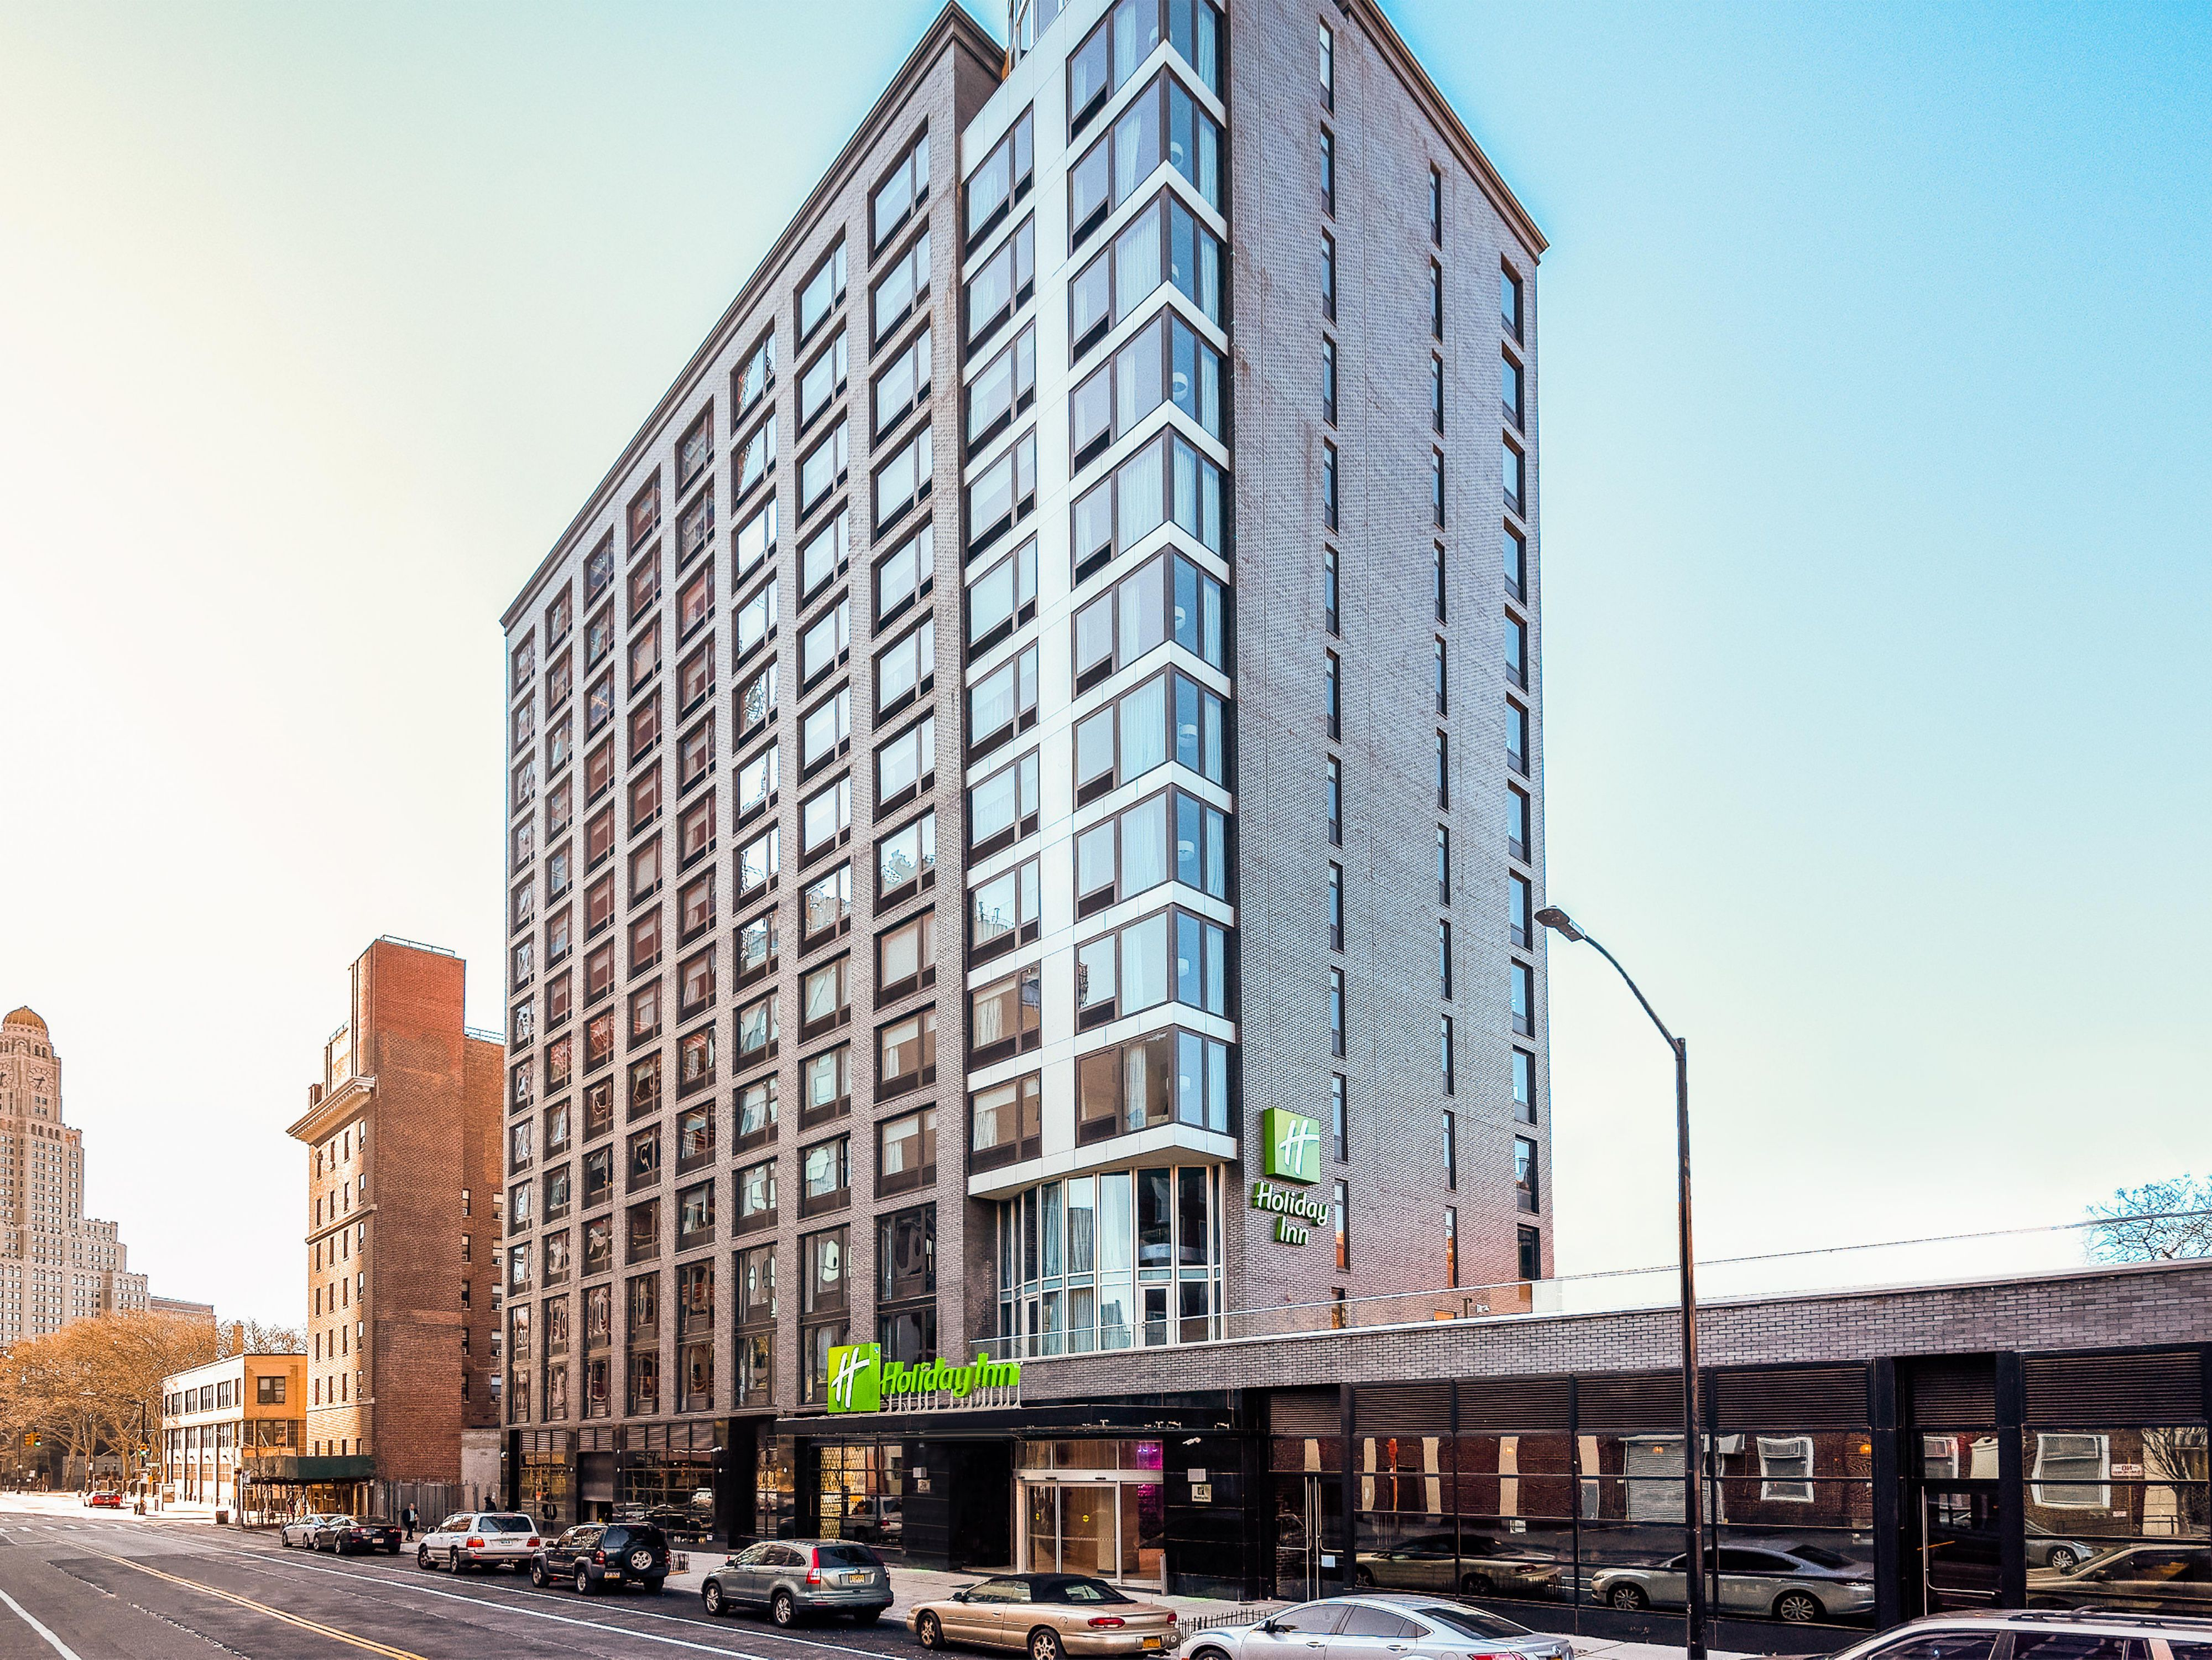 Hotels near Barclay Center in Brooklyn NYC | Holiday Inn Brooklyn